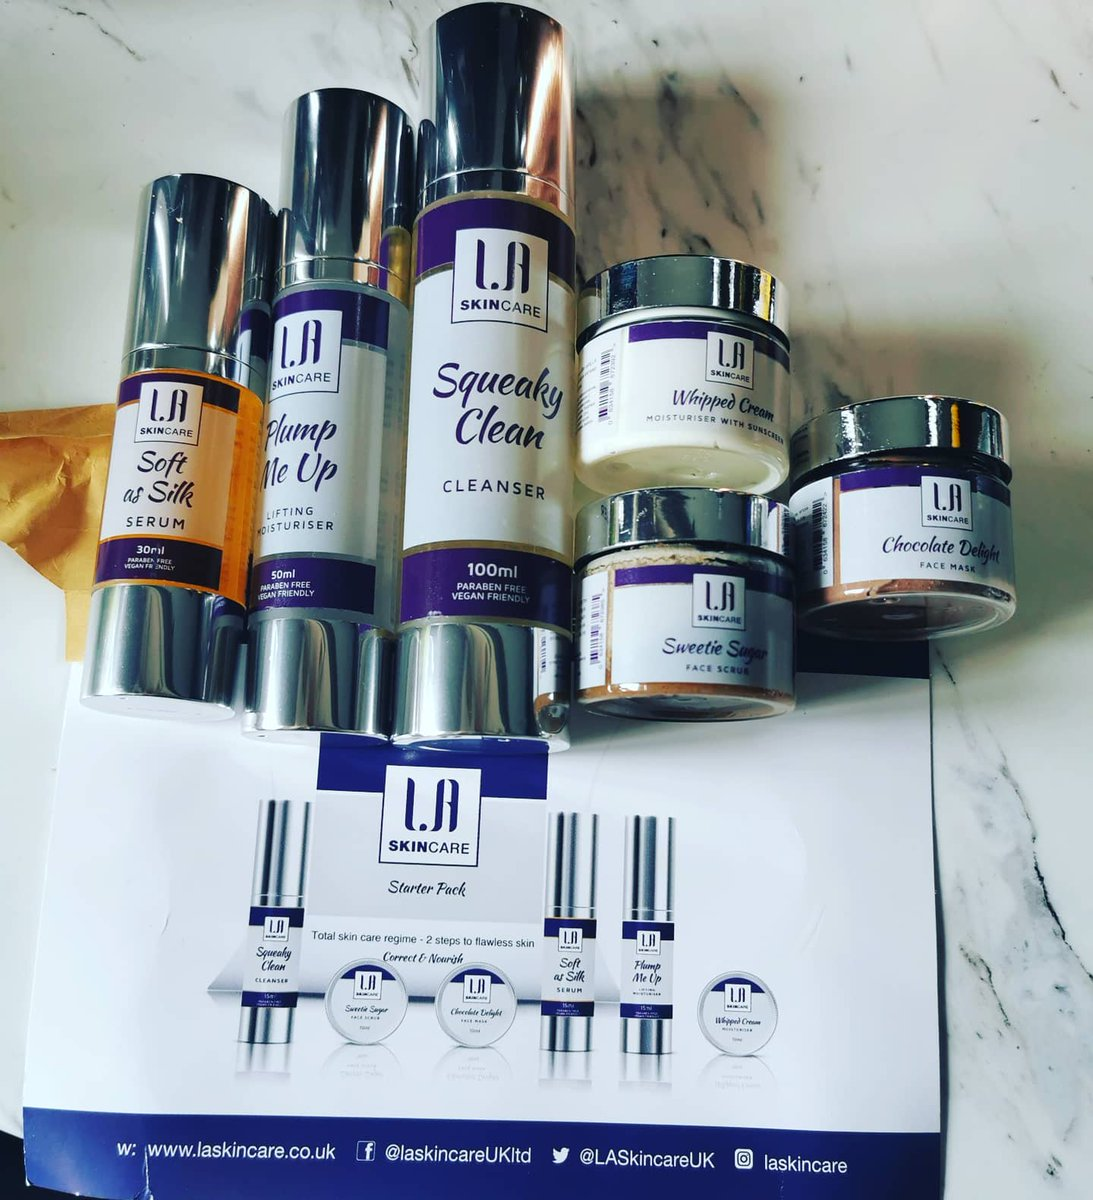 We absolutely adore to see your favourite products and combinations of skincare #shelfie  #skincare #skincarereview #skinroutine #bestskincare #skincareproducts #LAskincarepic.twitter.com/O7fAYORQHX